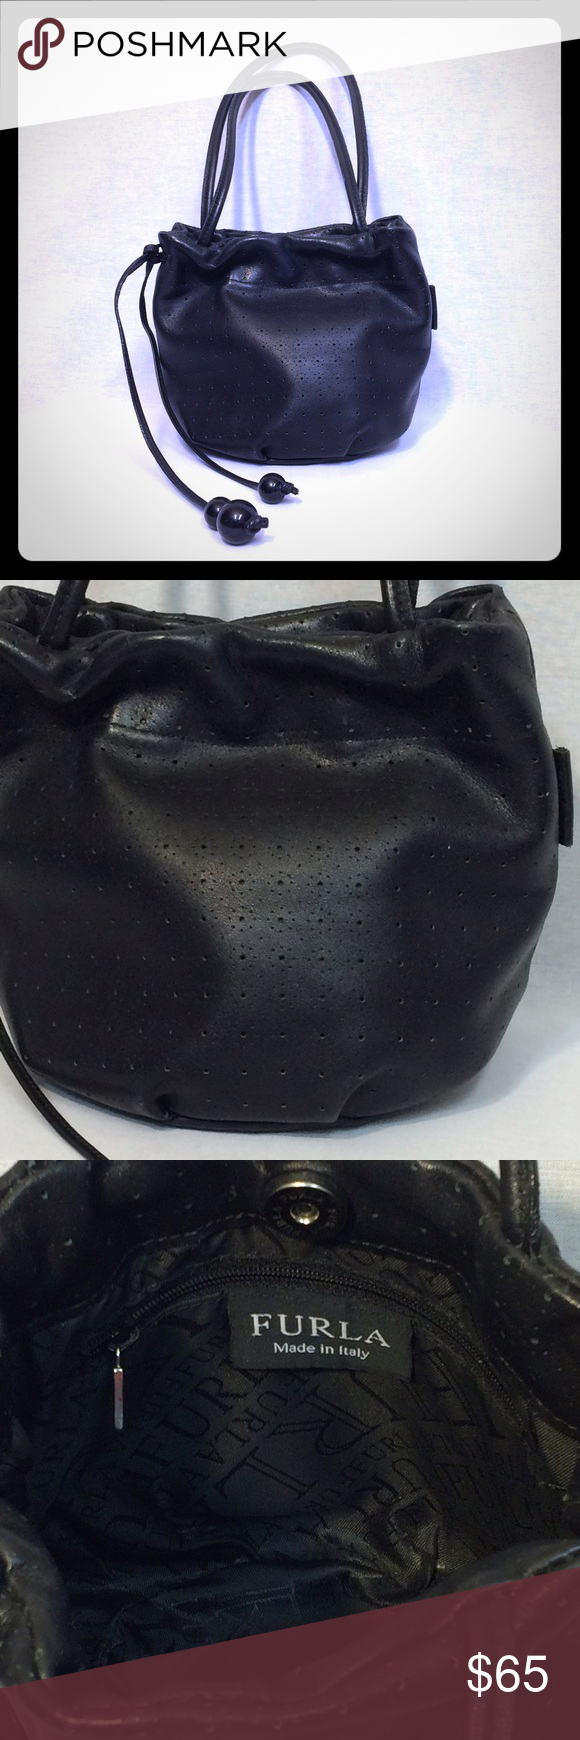 """Furla Mini Bucket Bag Perforated leather mini bucket bag from Furla. Approx. measurements: 5"""" L x 3 1/2 W x 7"""" D with 8"""" drop. Good, used condition - minimal wear throughout but no rips, tears or stains. Features drawstring and magnetic closures and interior zipper pocket. Perfect day to night bag, it is simple and chic and able to transition no matter what your wearing! Furla Bags"""